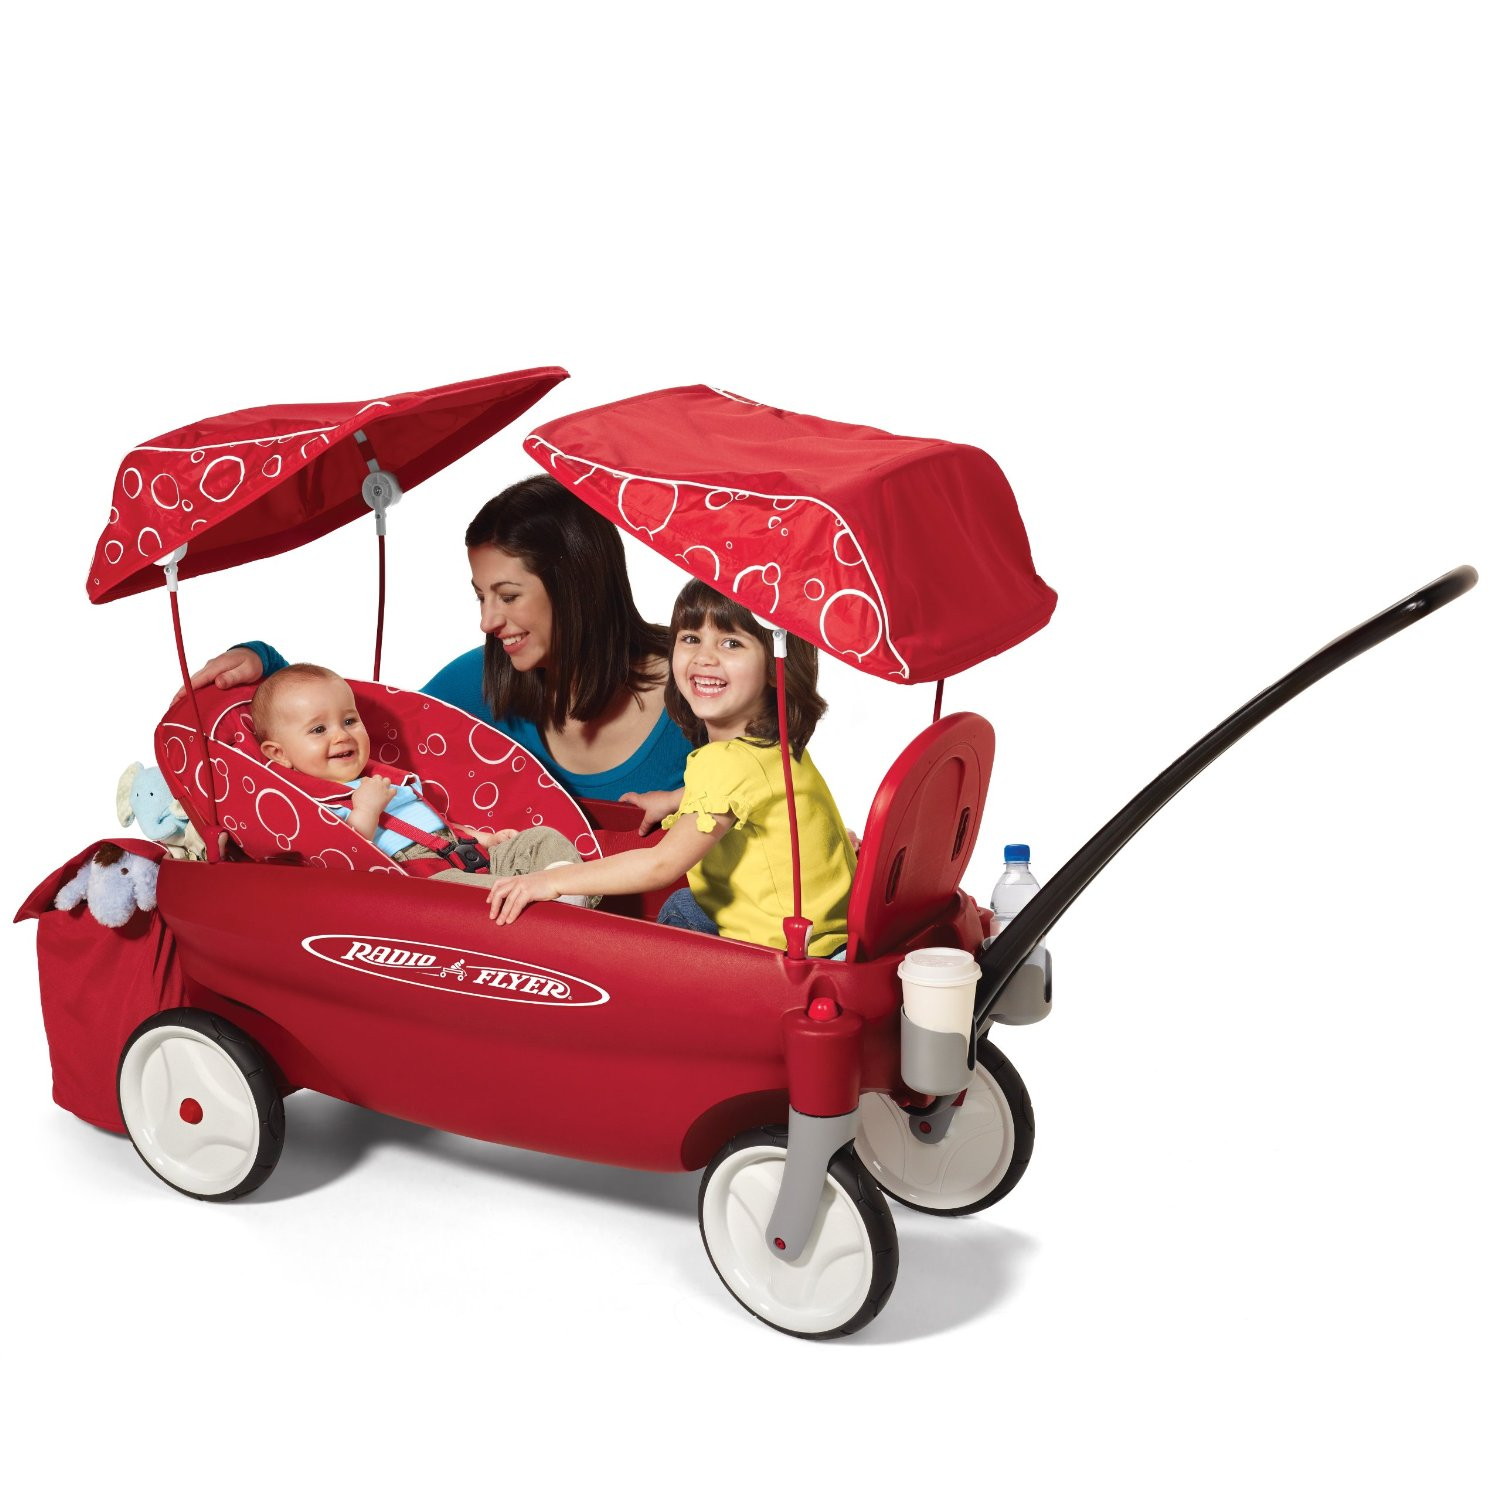 Total Fab Best Wagons With Canopy Tops For Baby